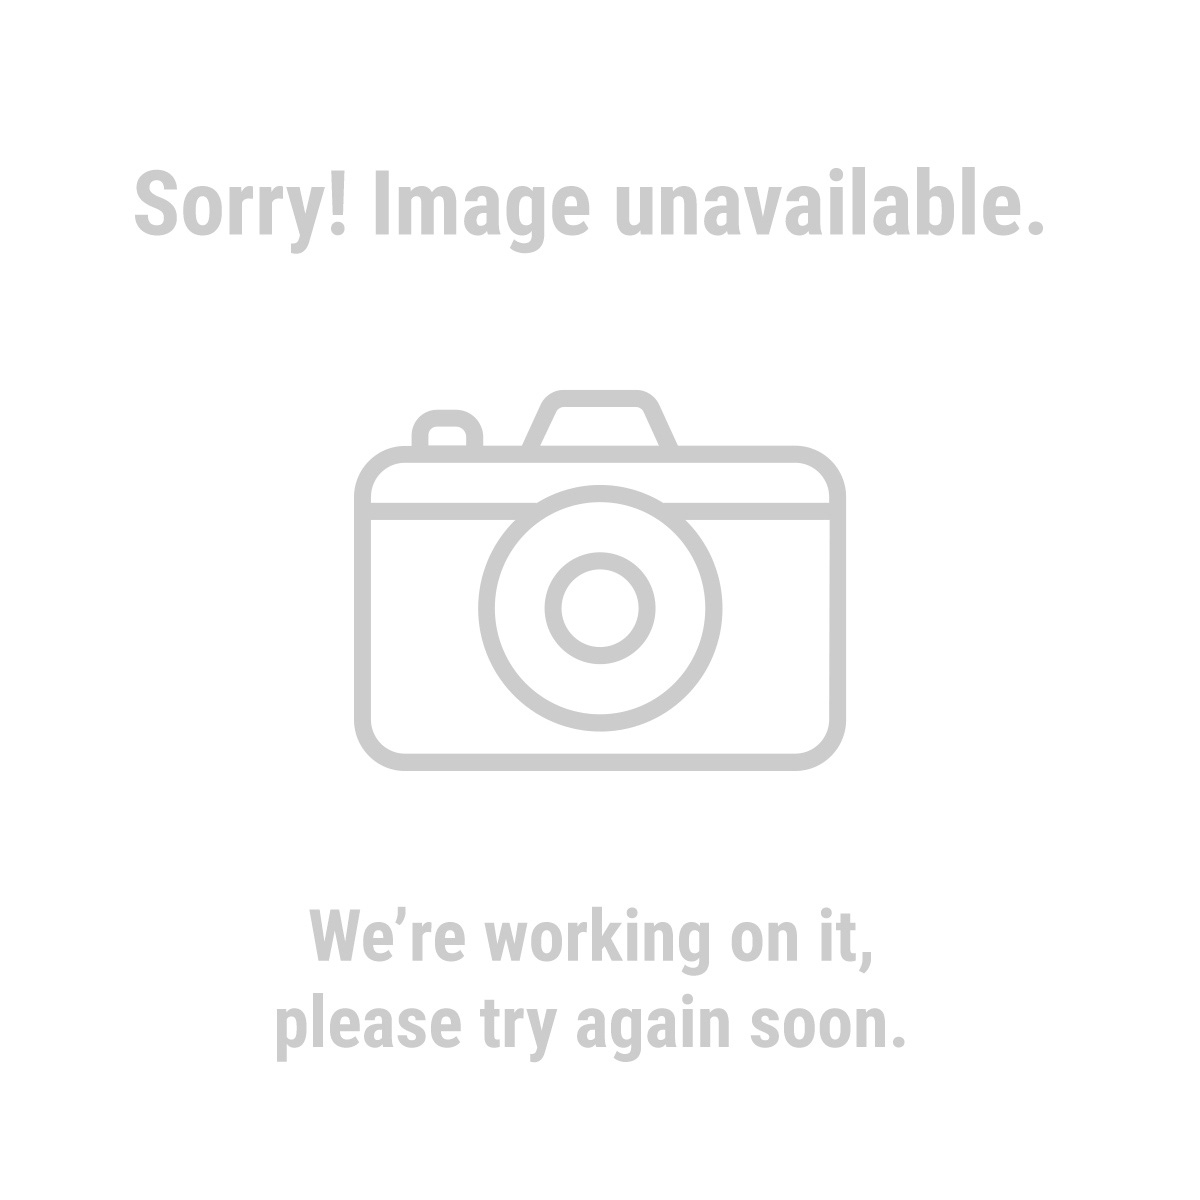 Chicago Electric Power Tools 61317 Wet/Dry Shop Vacuum & Blower - 5 Gallon